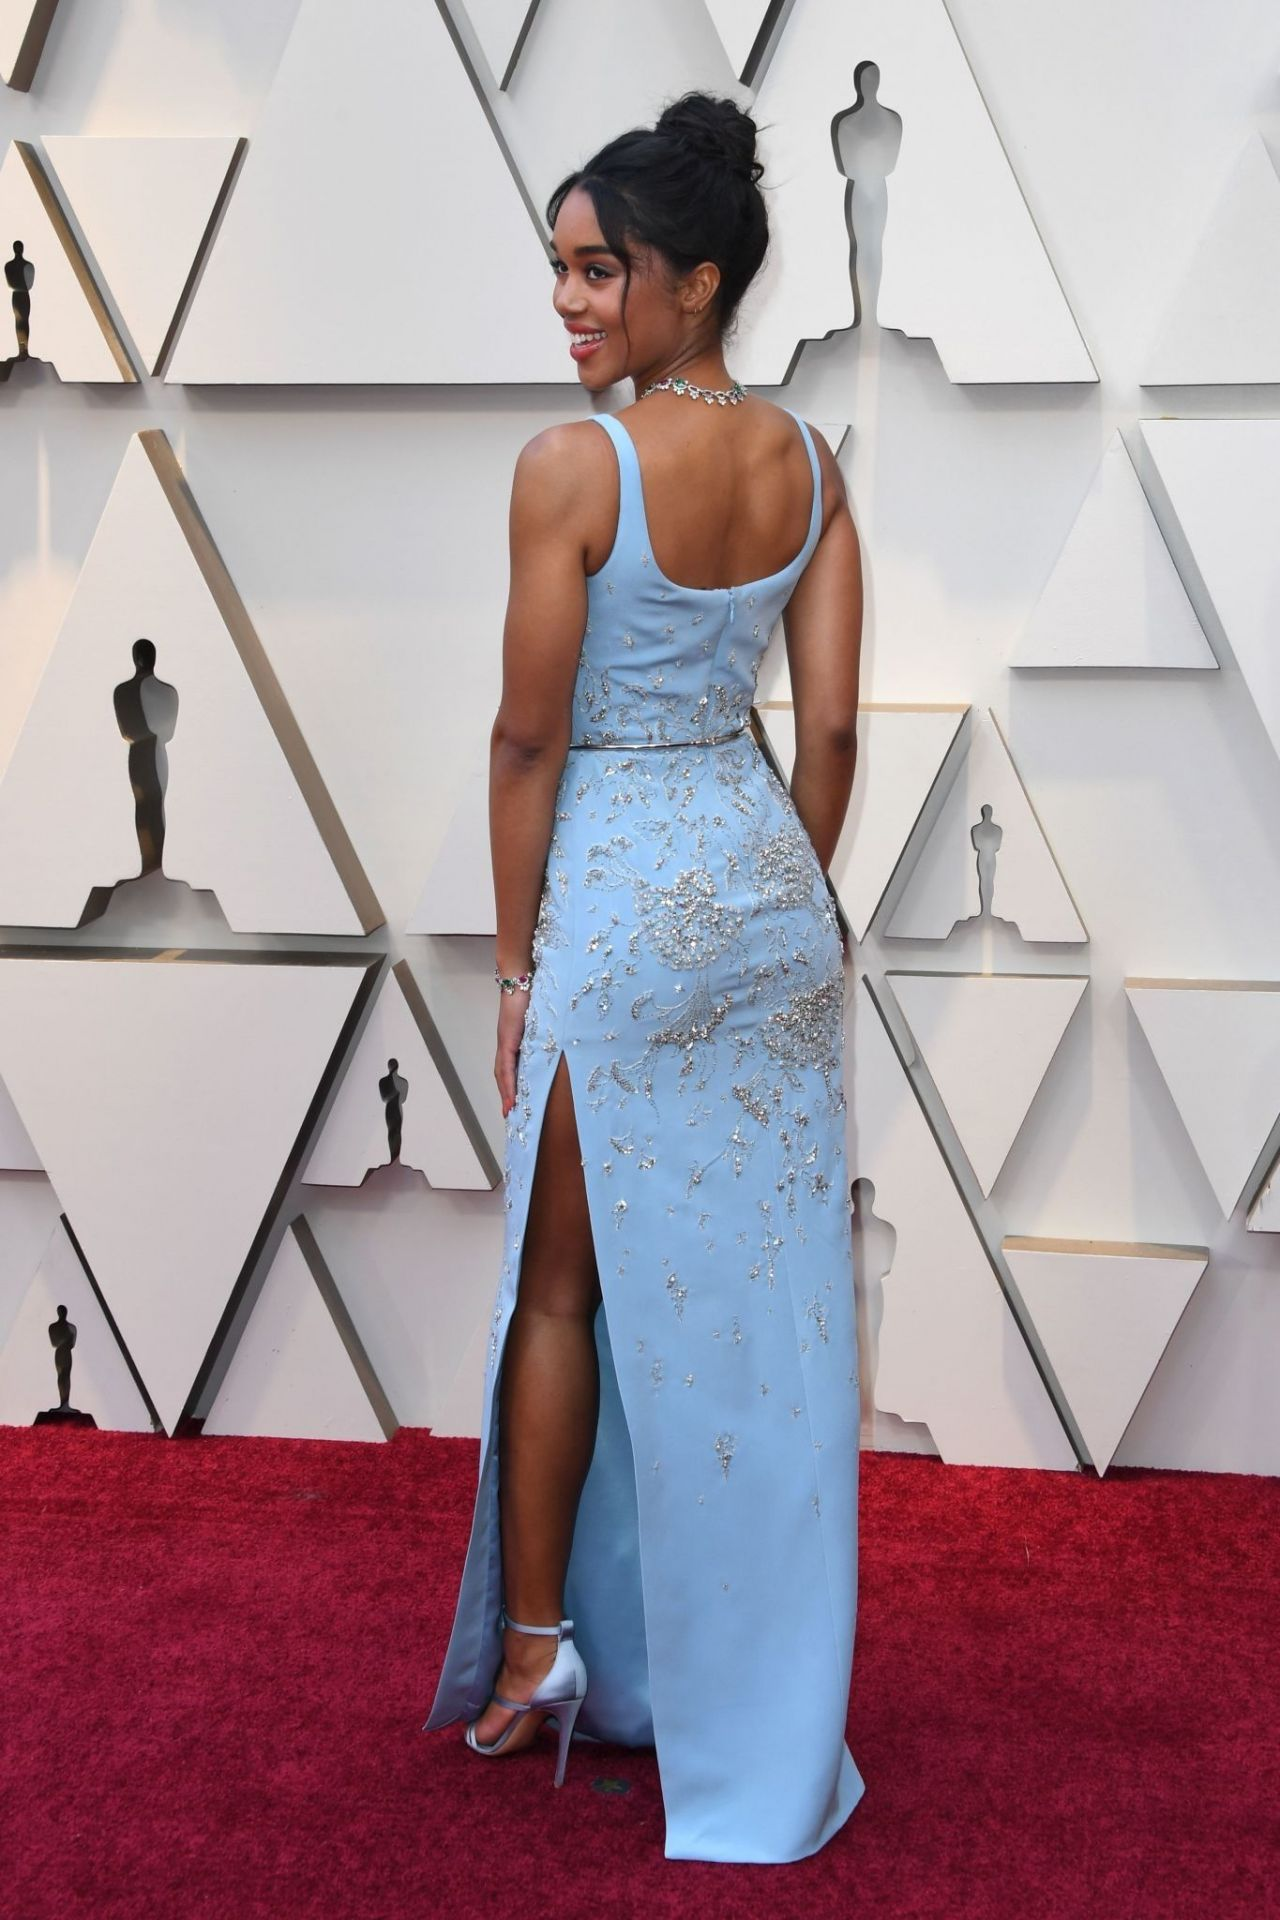 https://celebmafia.com/wp-content/uploads/2019/02/laura-harrier-oscars-2019-red-carpet-4.jpg